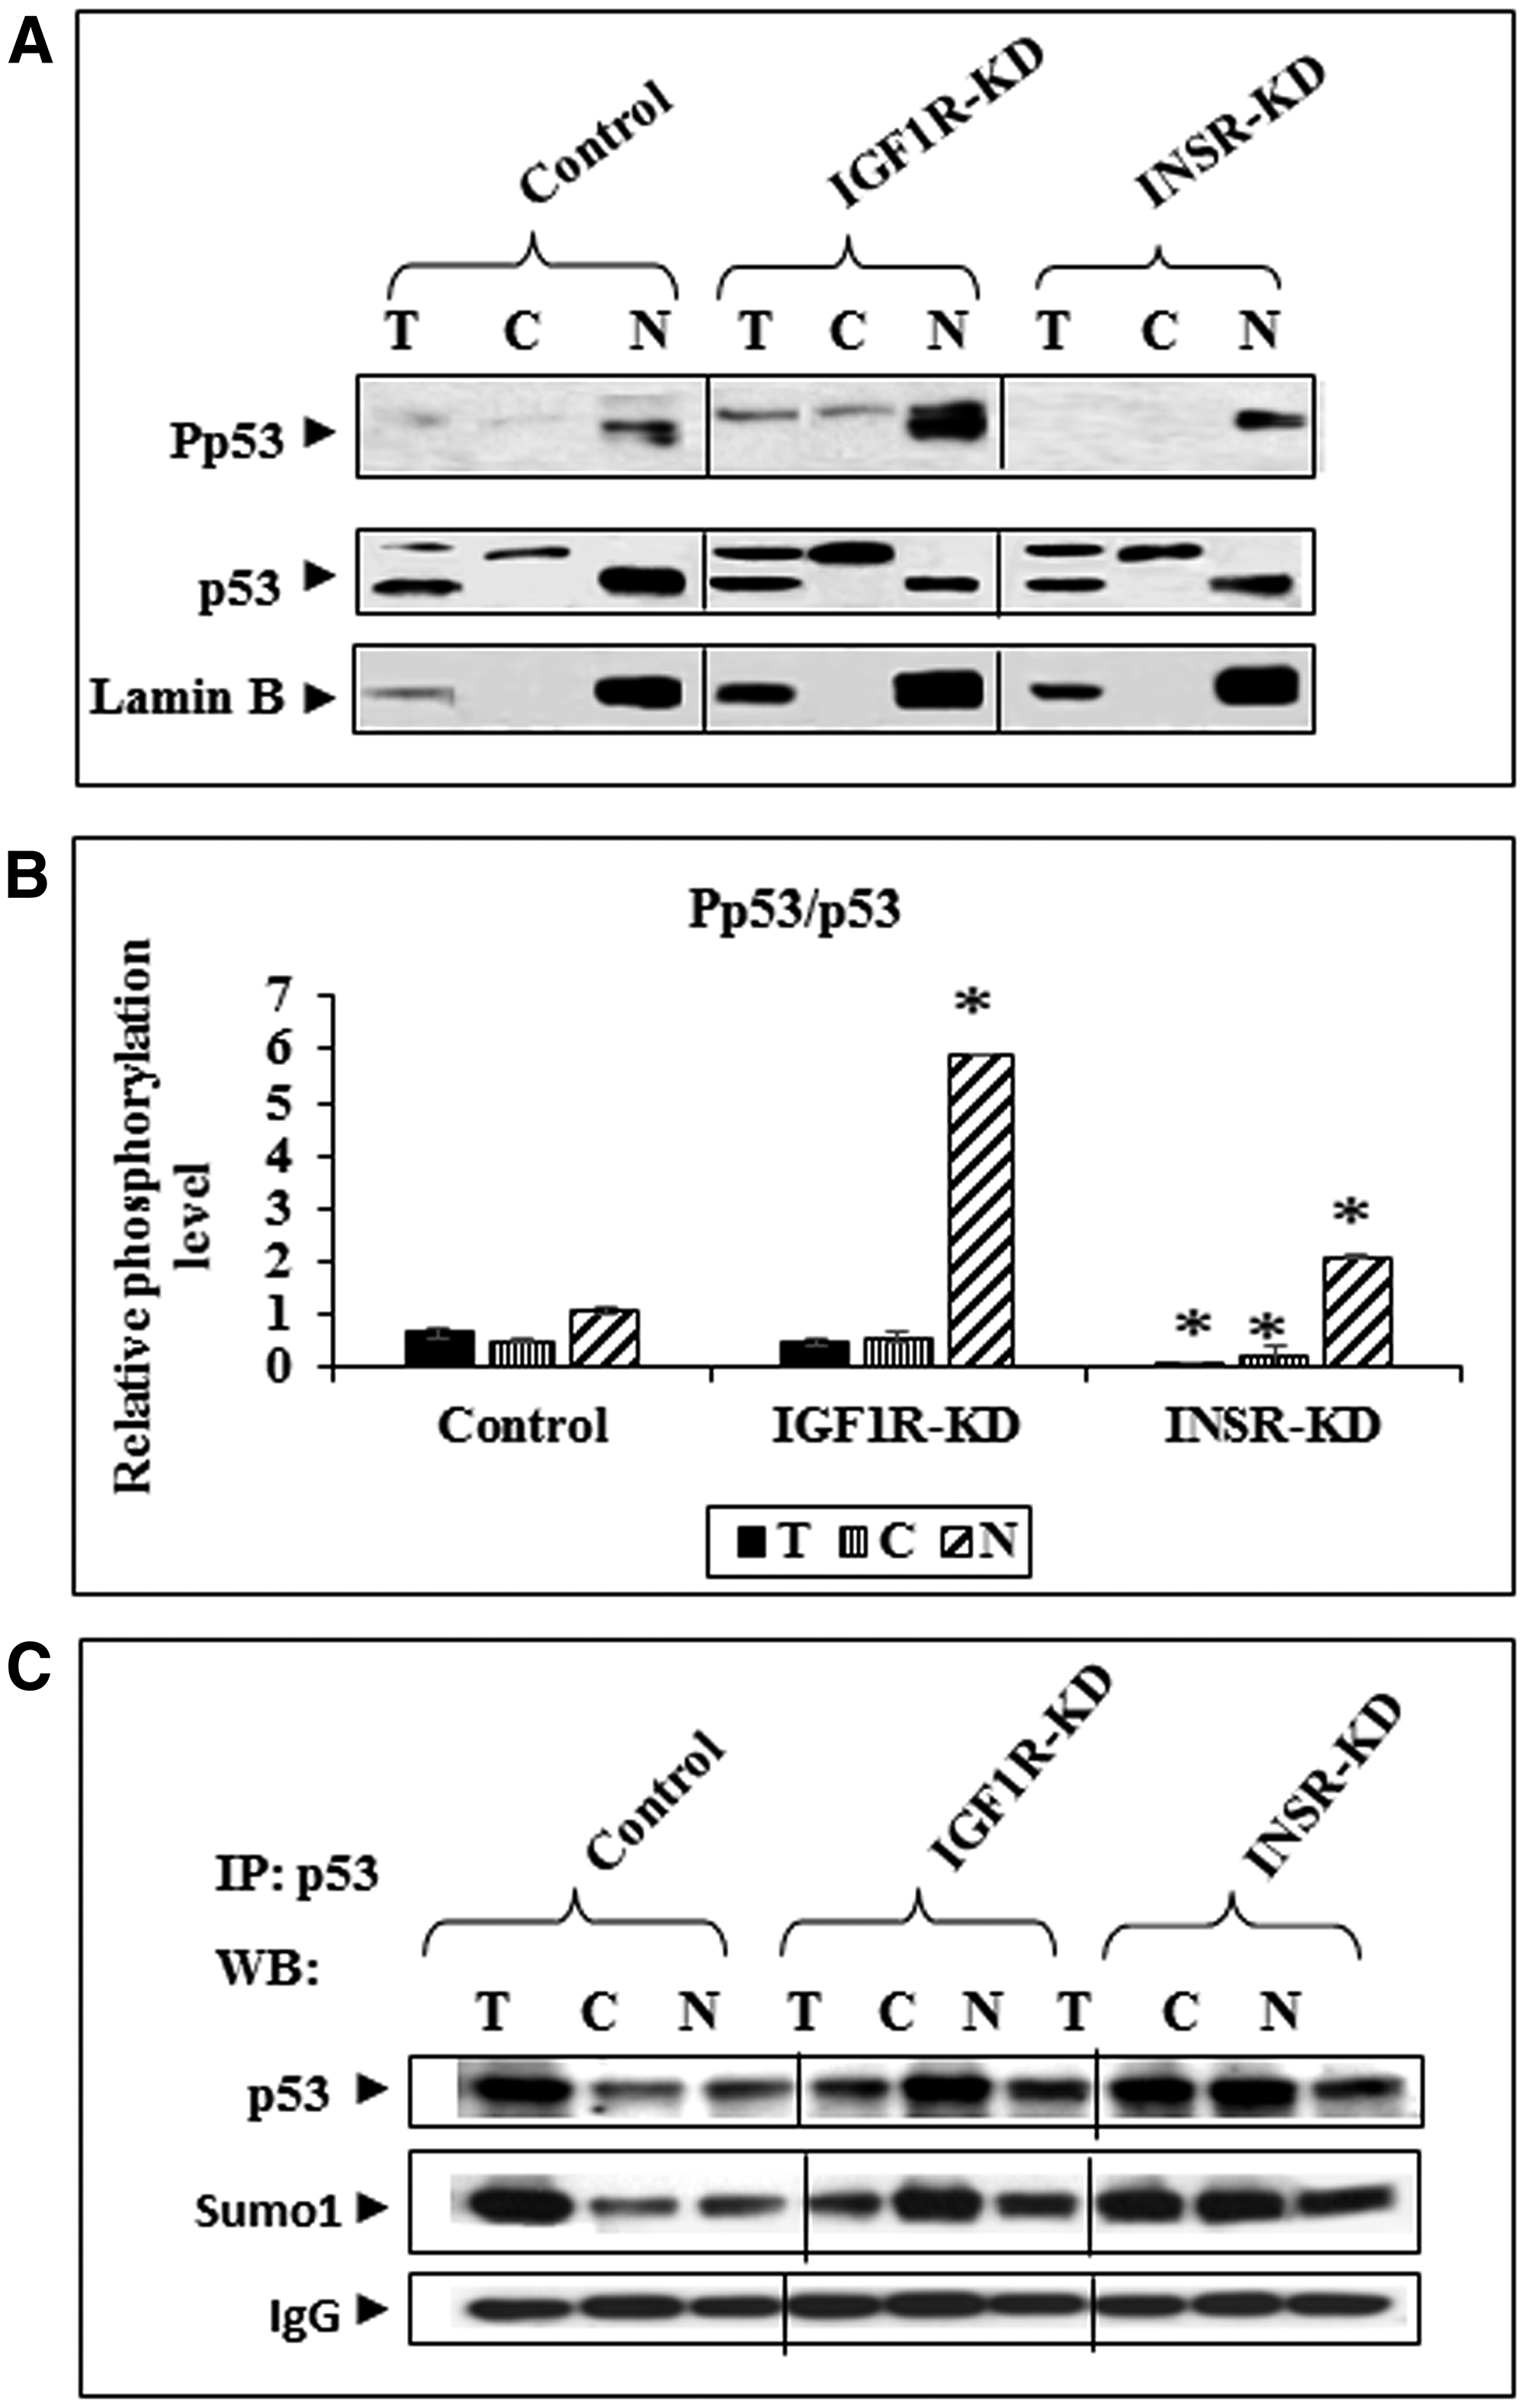 Western blot analysis of total and phospho-p53 in IGF1R-KD and INSR-KD cells.